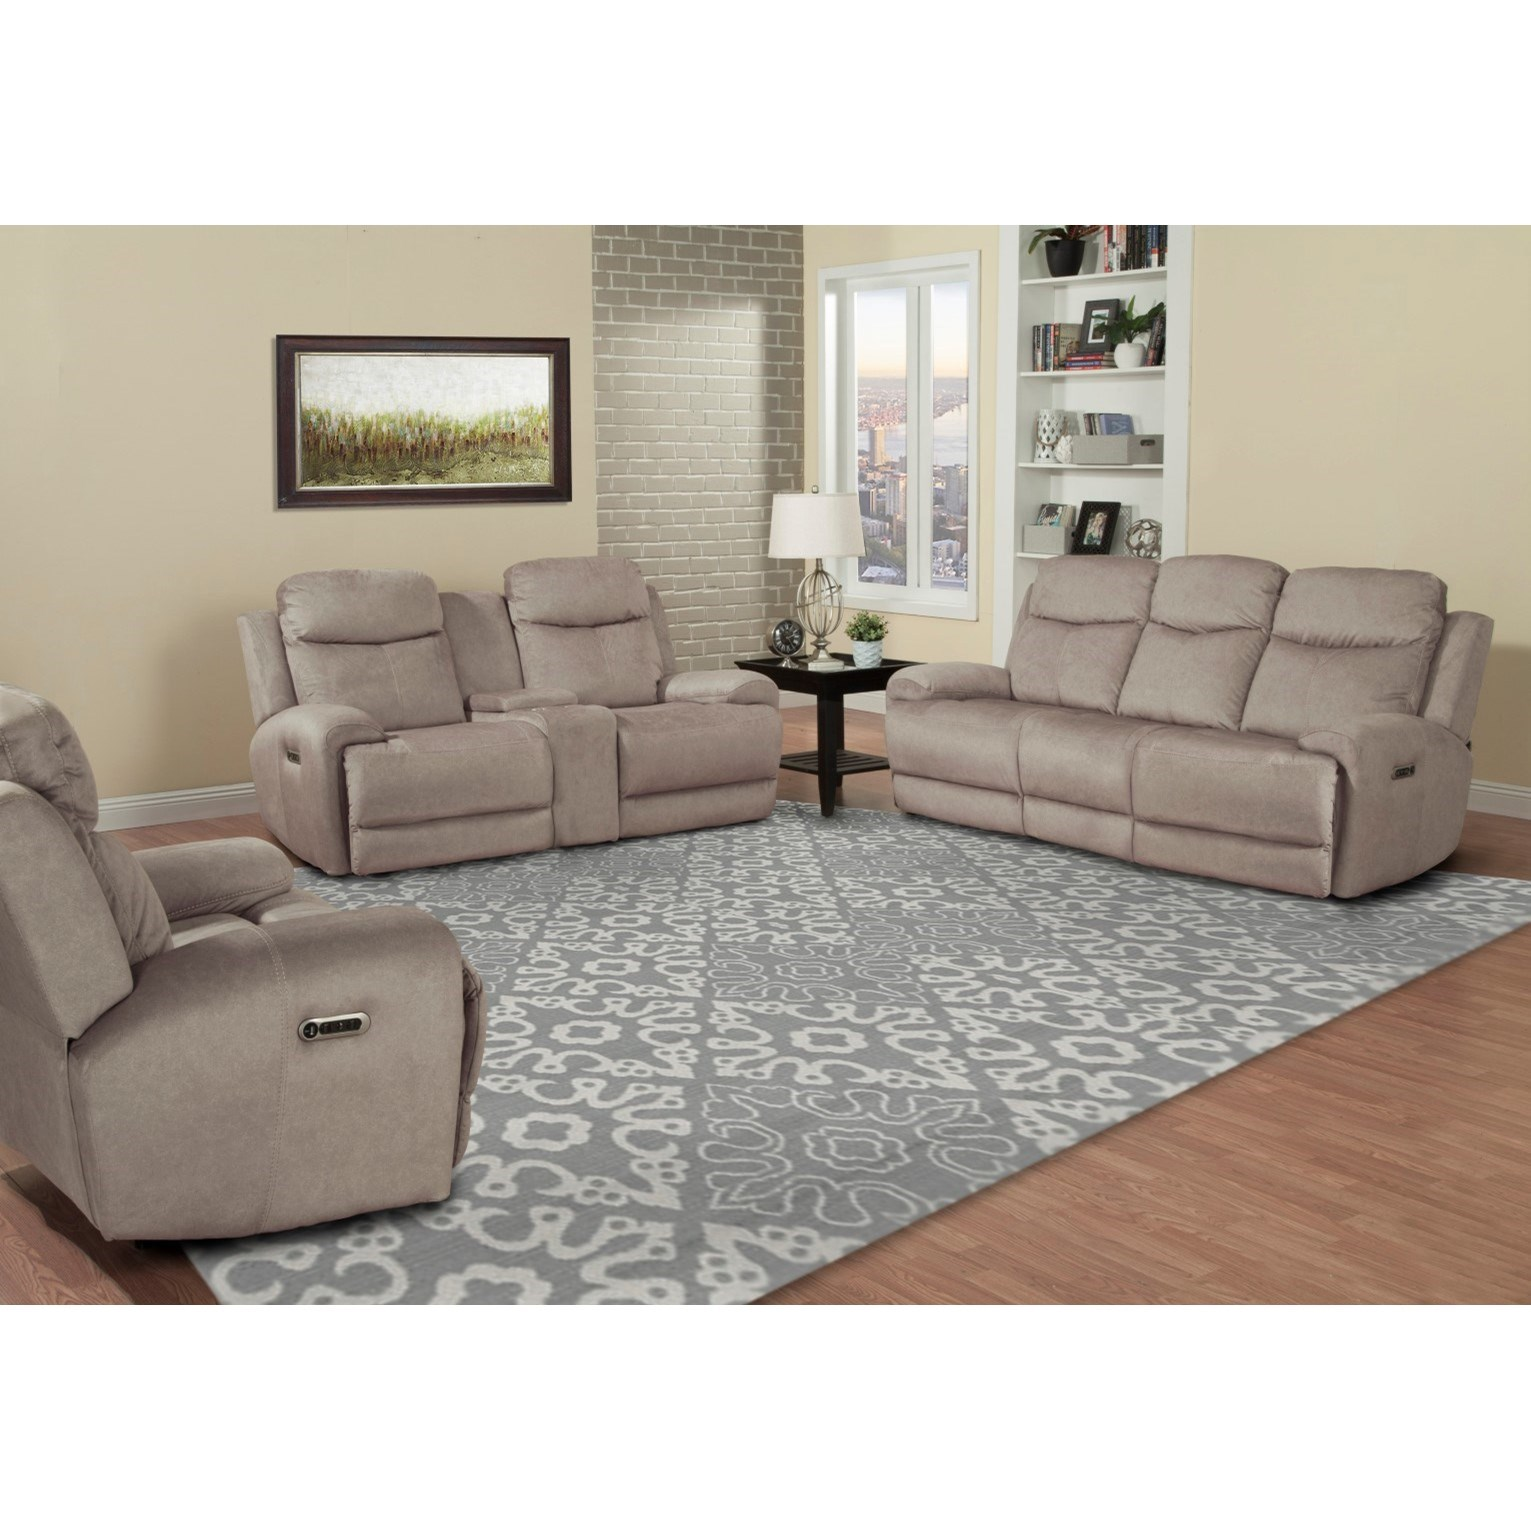 Bowie Reclining Living Room Group by Parker Living at Zak's Home